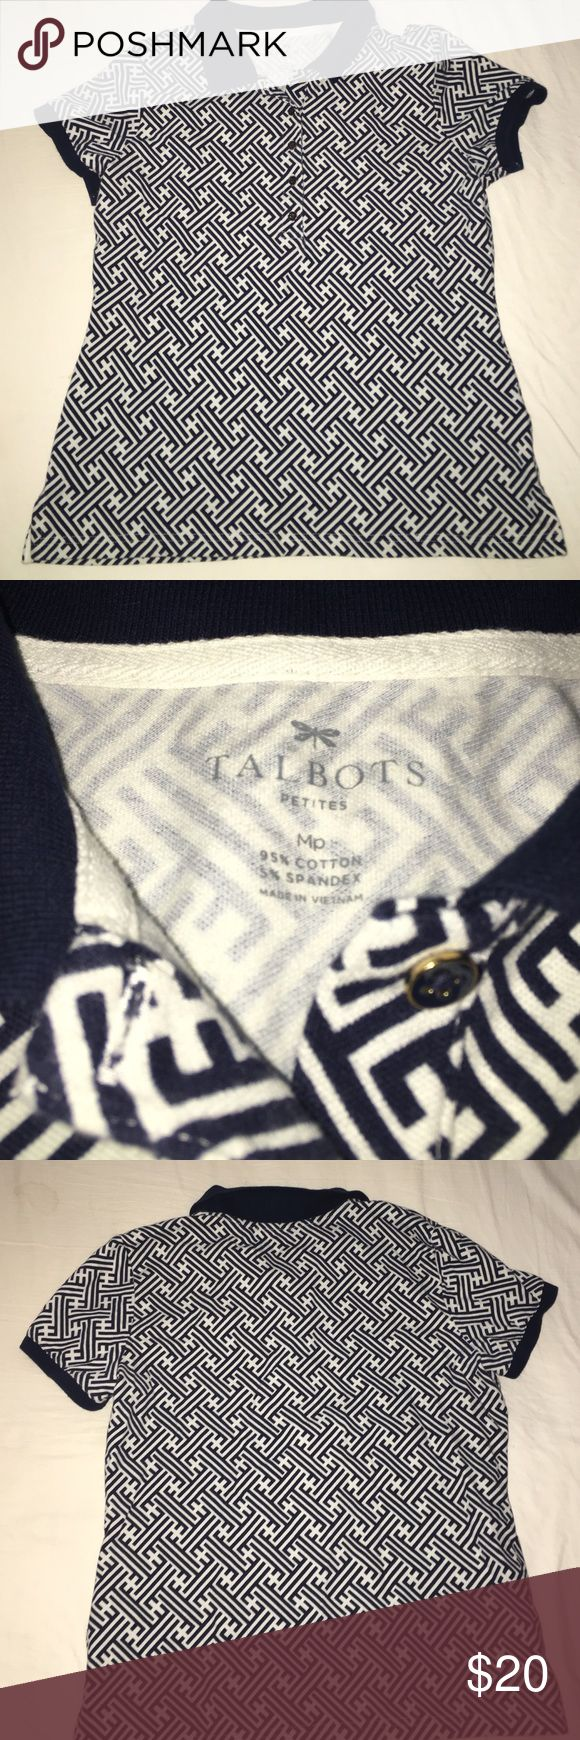 Talbots Shirt This is a medium Talbots collared shirt with four buttons. It's like new and has no tears or stains. It's a navy blue and white color. Talbots Tops Tees - Short Sleeve